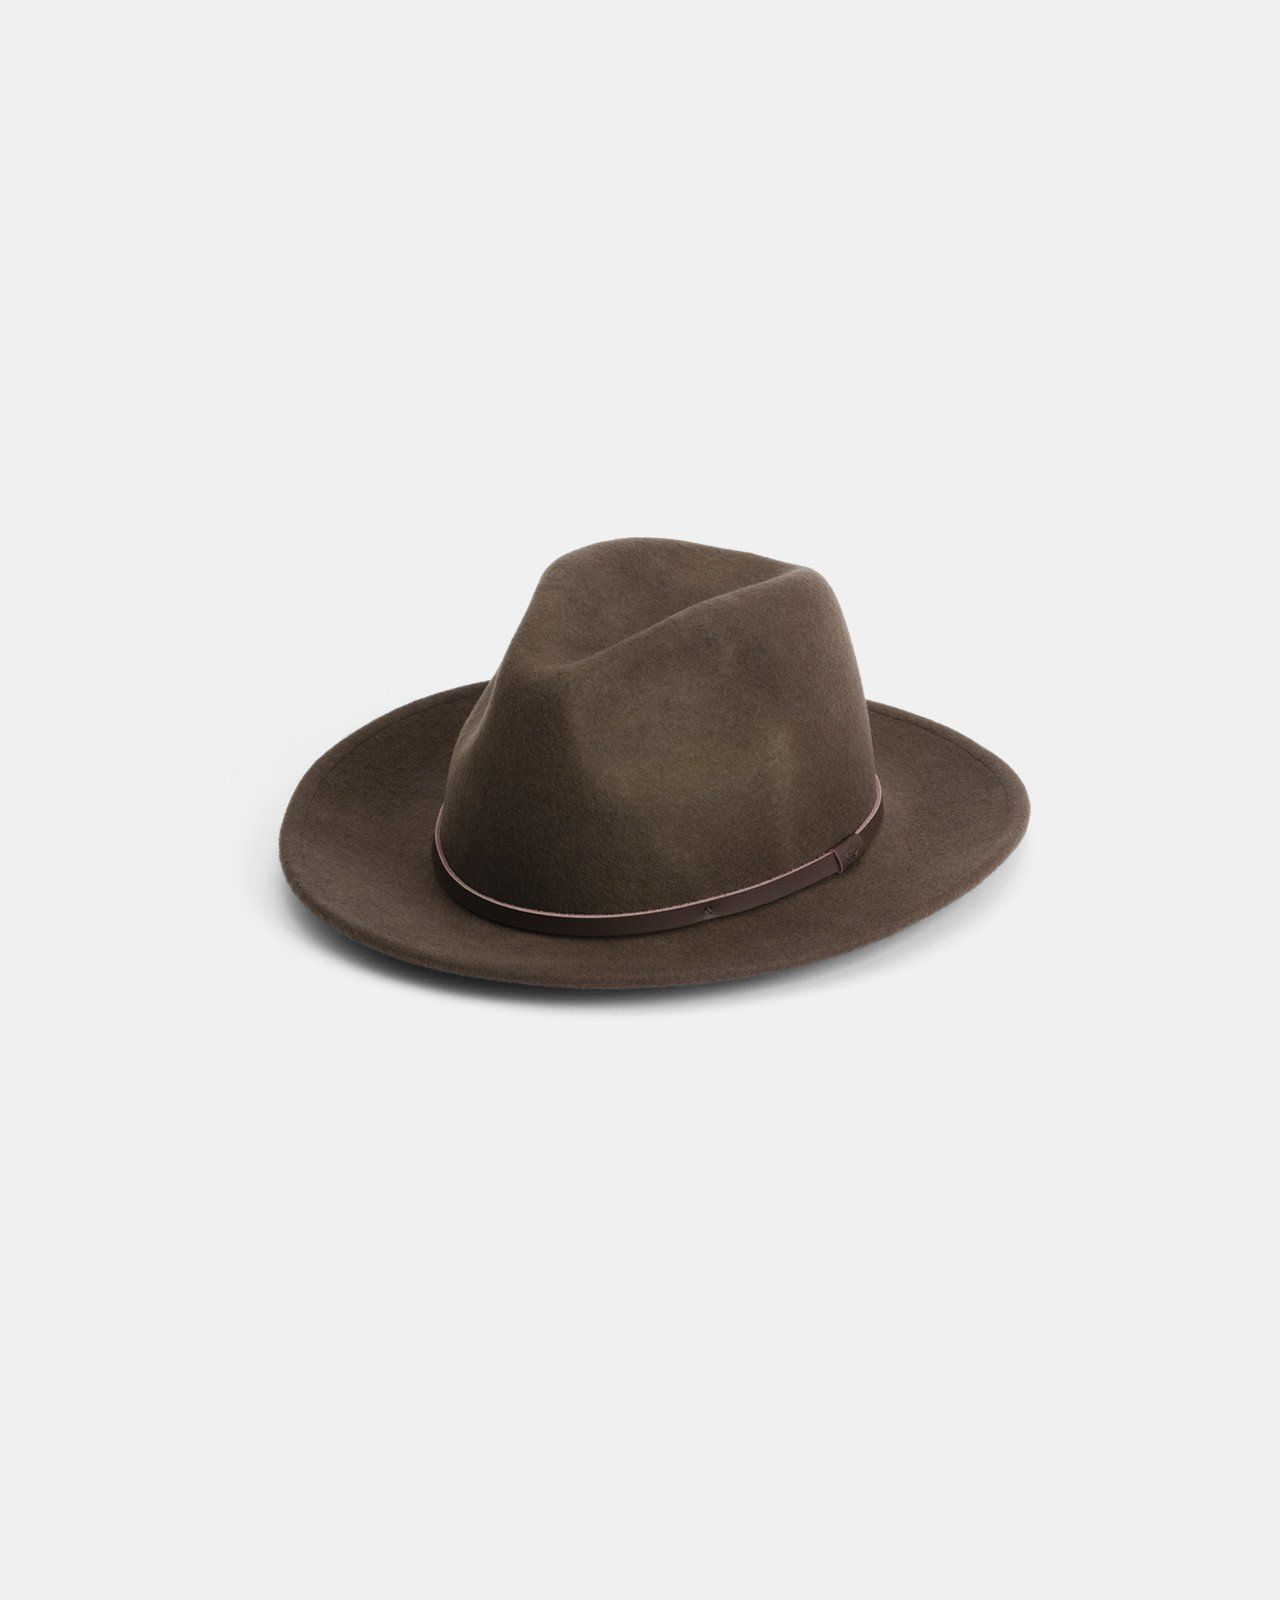 b2fc30db William Brown, the original earthy fedora from Will & bear. Perfect for  casual wear, festival outfits or your outdoors adventure.